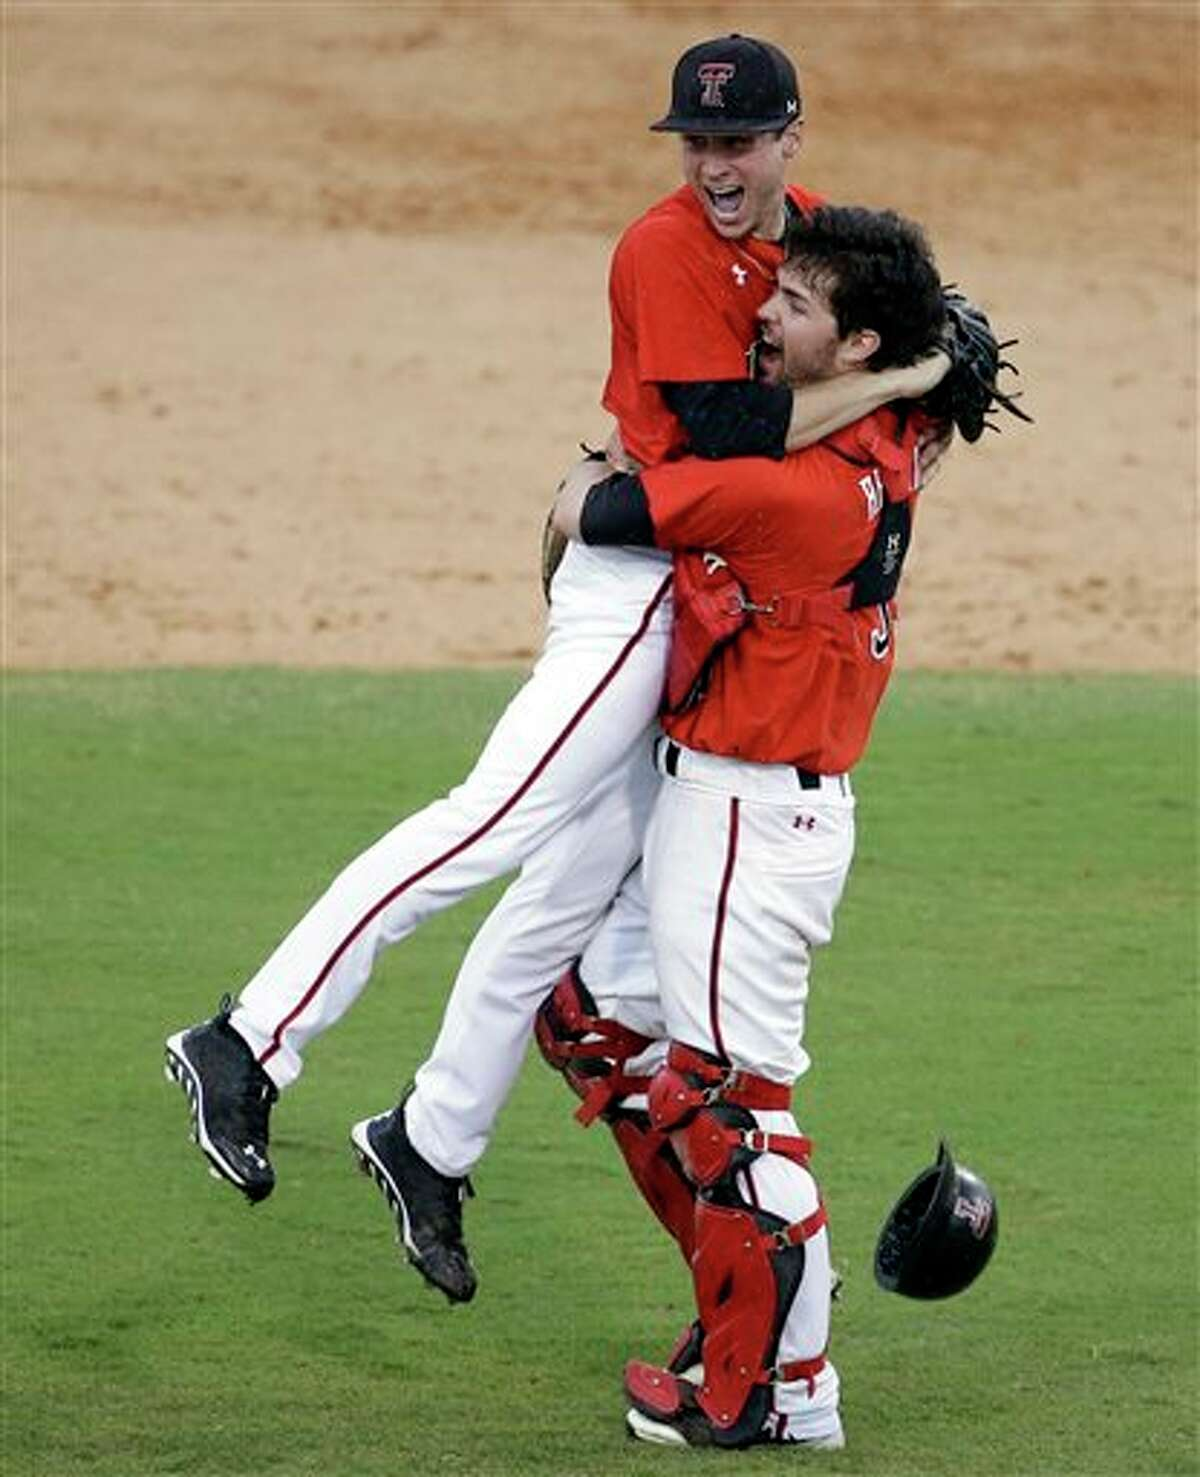 Texas Tech starting pitcher Cameron Smith, left, jumps into the arms of catcher Hunter Redman, right, after defeating Miami 4-0 during an NCAA college baseball regional tournament in Coral Gables, Fla., Monday, June 2, 2014. Texas Tech advances to the Super Regionals with the win. (AP Photo/Lynne Sladky)